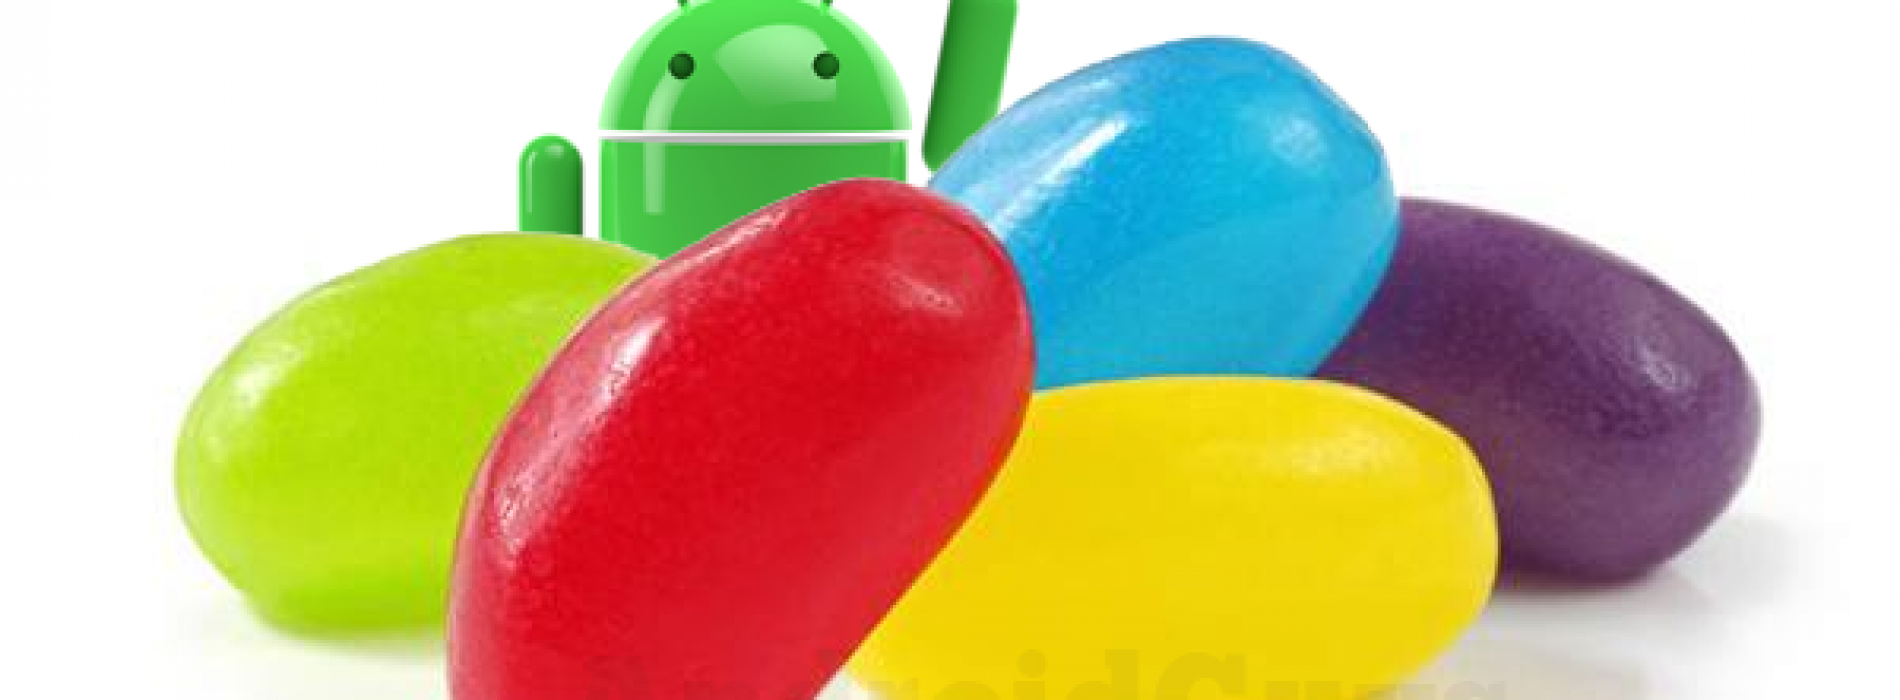 DigiTimes: Android 5.0 Jellybean to launch in Q2